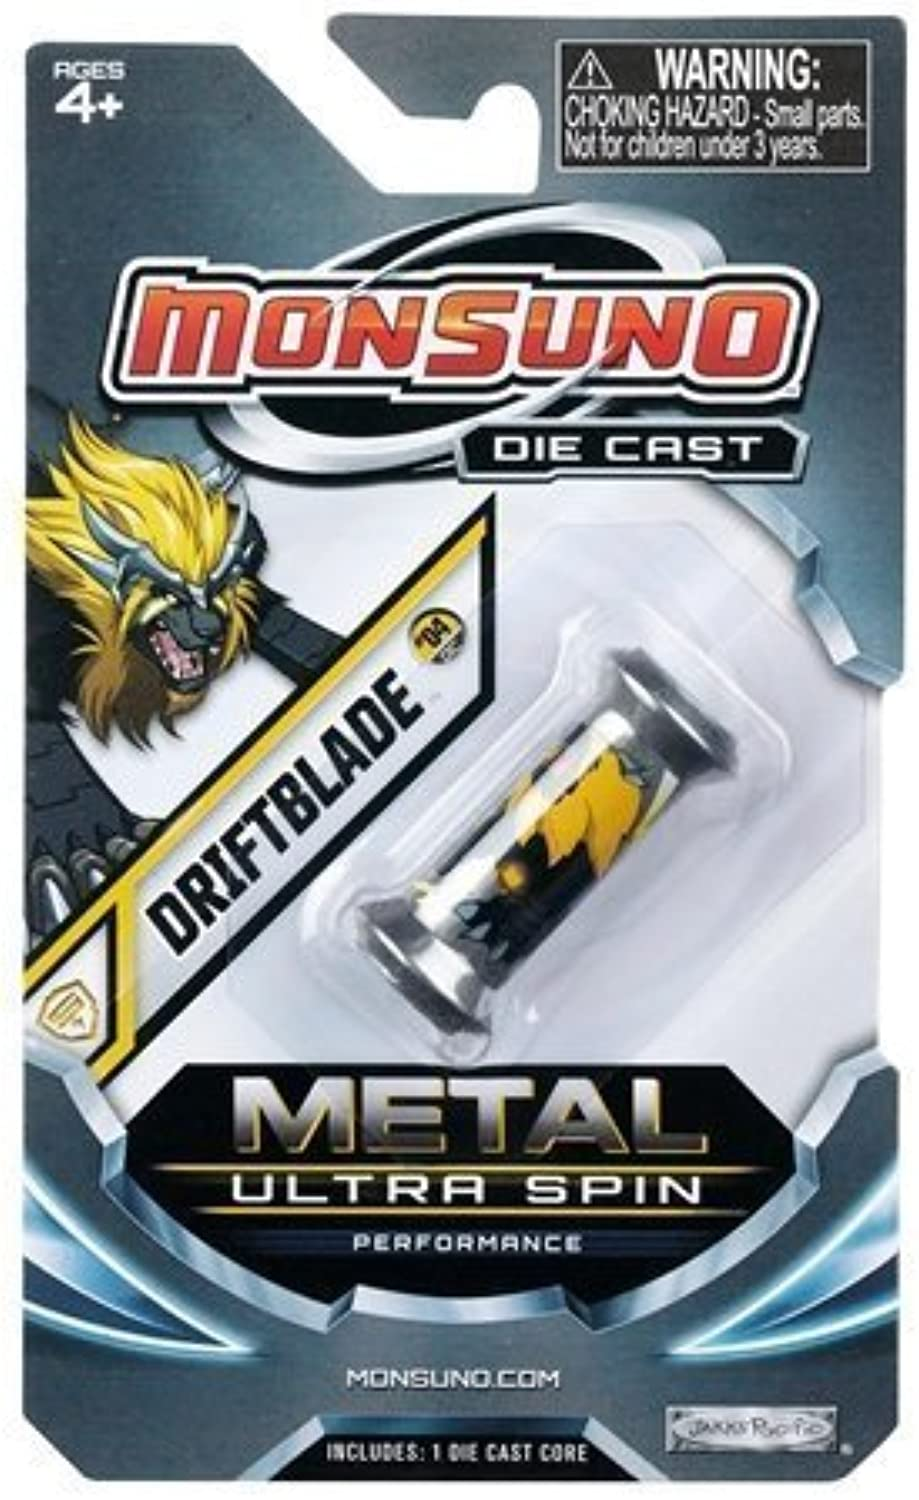 Monsuno Die Cast Metal Ultra Spin Core Driftblade by Jakks Pacific